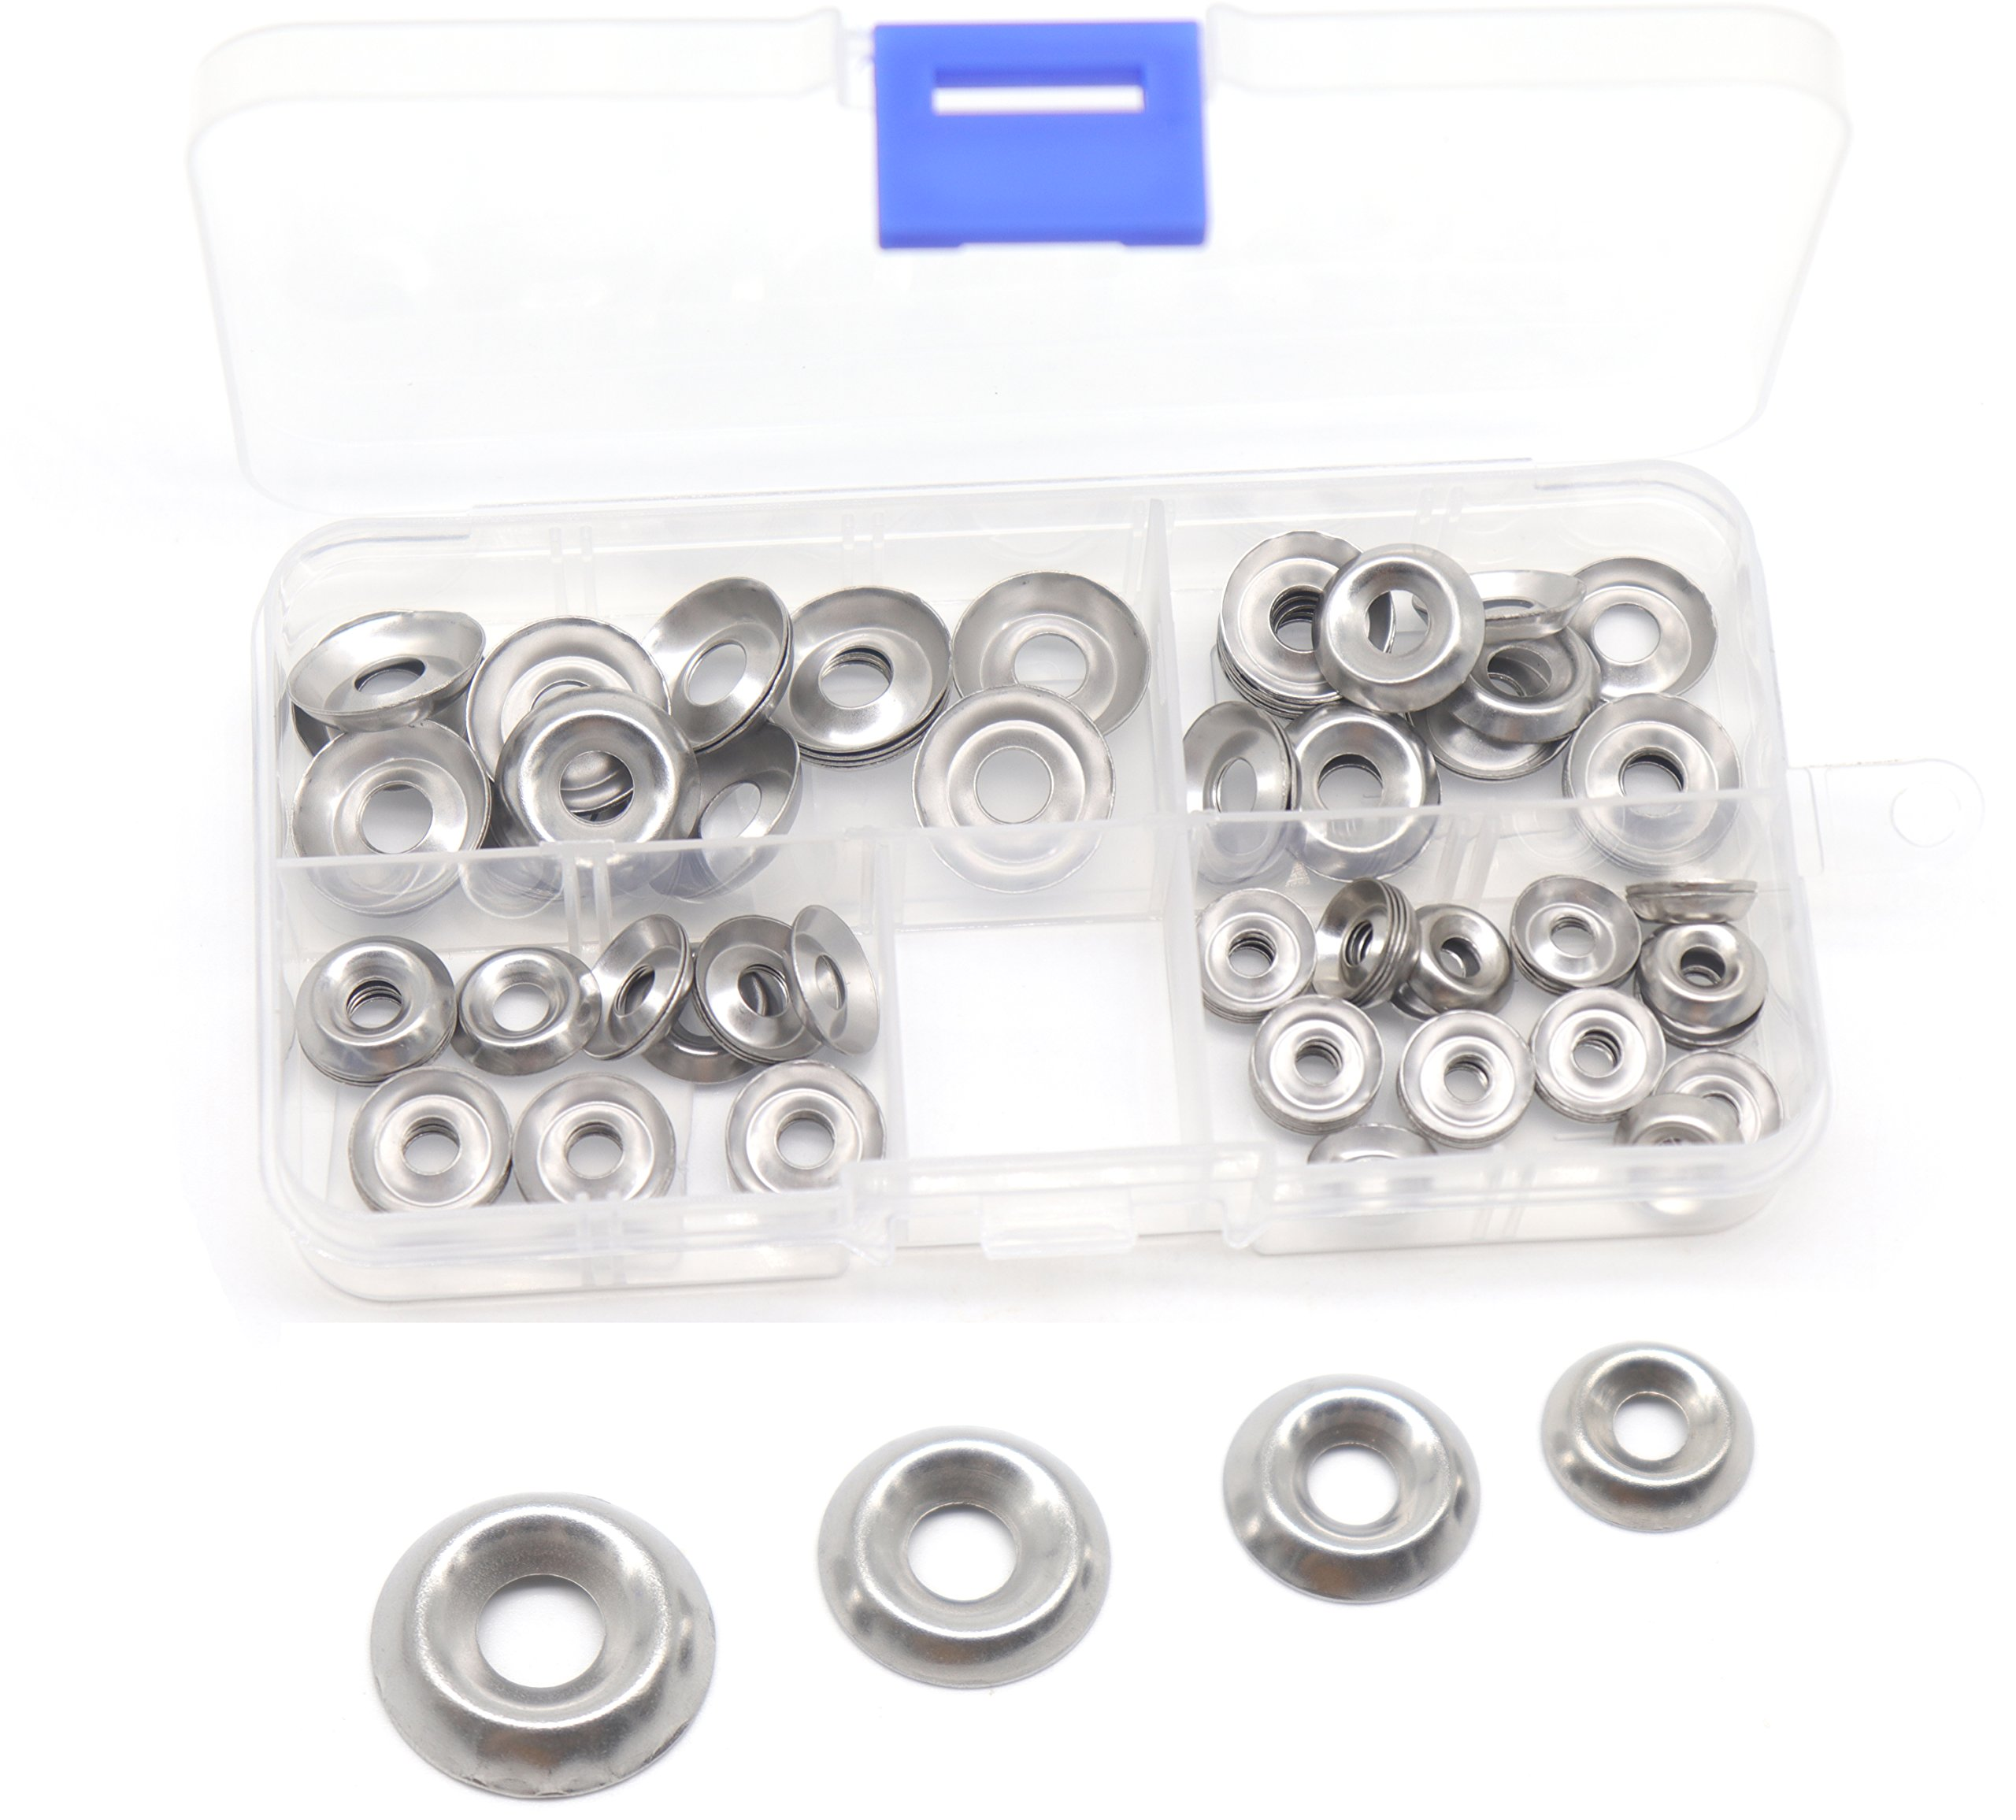 cSeao 110pcs Stainless Steel Finishing Cup Countersunk Washers Assortment Kit, 6#/ 8#/ 10#/ 12#